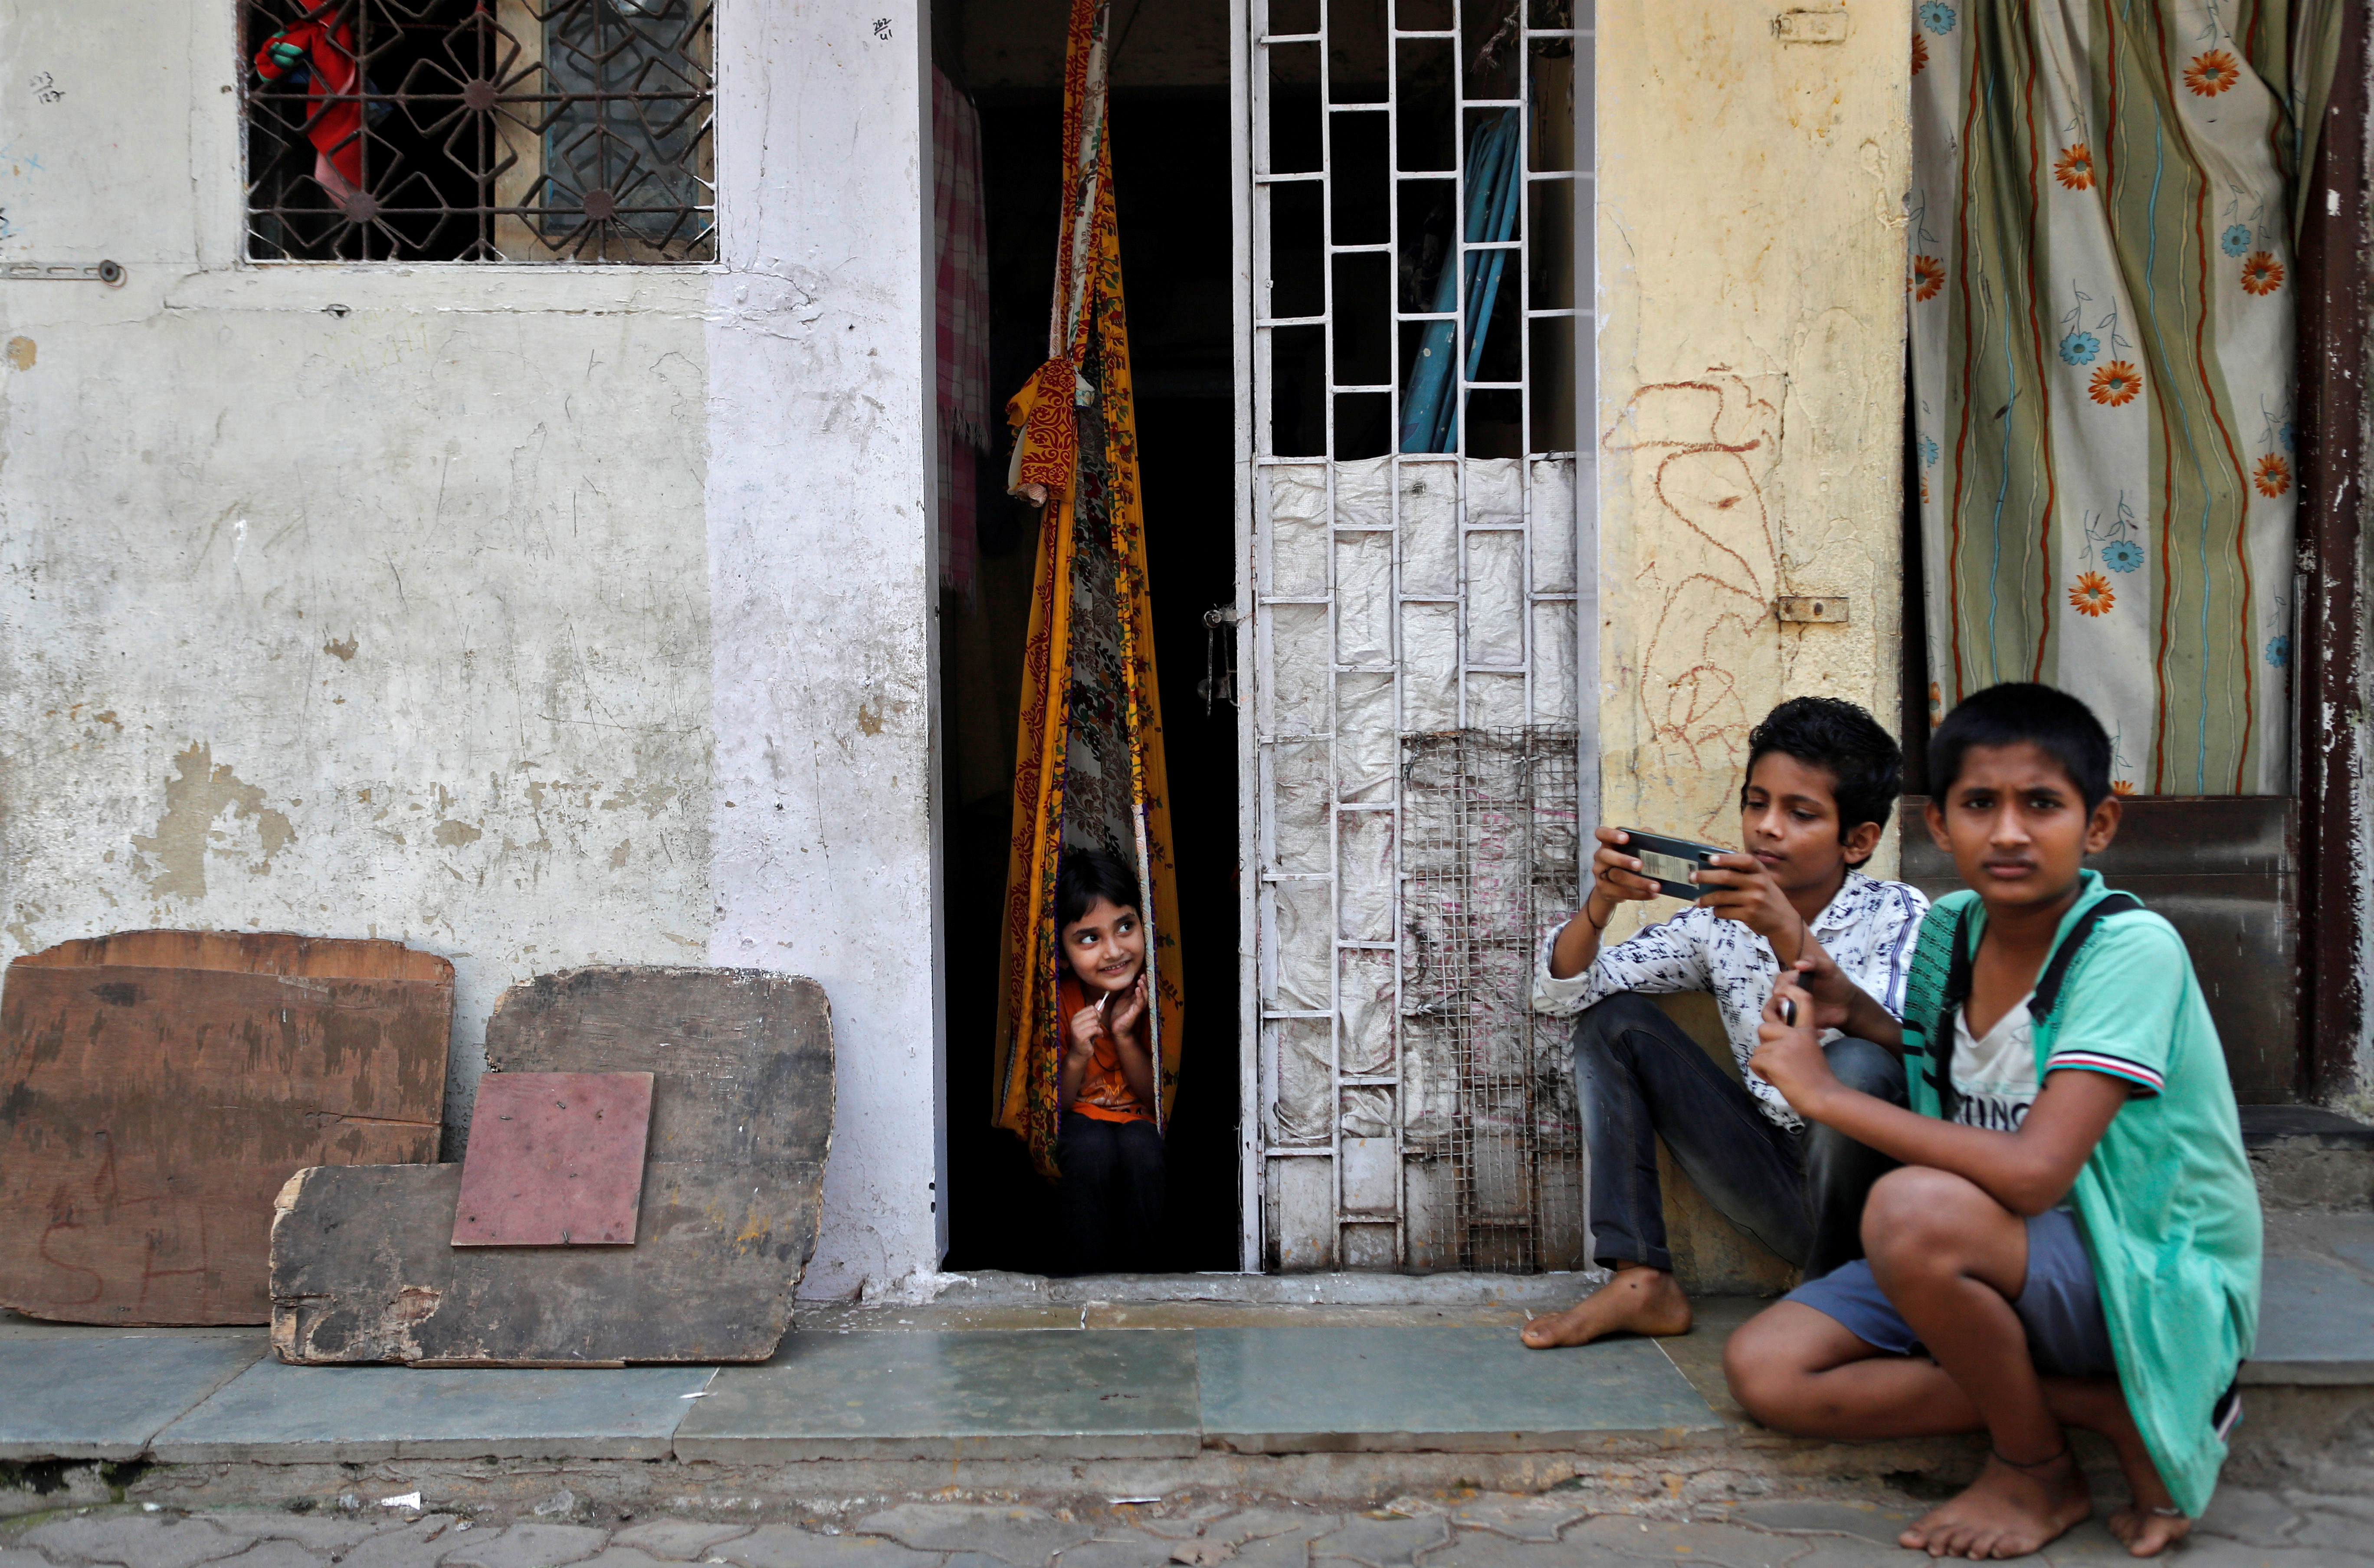 "Children play outside a house, during a nationwide lockdown in India to slow the spread of COVID-19, in Dharavi, one of Asia's largest slums, during the coronavirus disease outbreak, in Mumbai, India, April 10, 2020. REUTERS/Francis Mascarenhas     SEARCH ""CORONAVIRUS MUMBAI SLUM"" FOR THIS STORY. SEARCH ""WIDER IMAGE"" FOR ALL STORIES. - RC2Z7G9BIT8M"